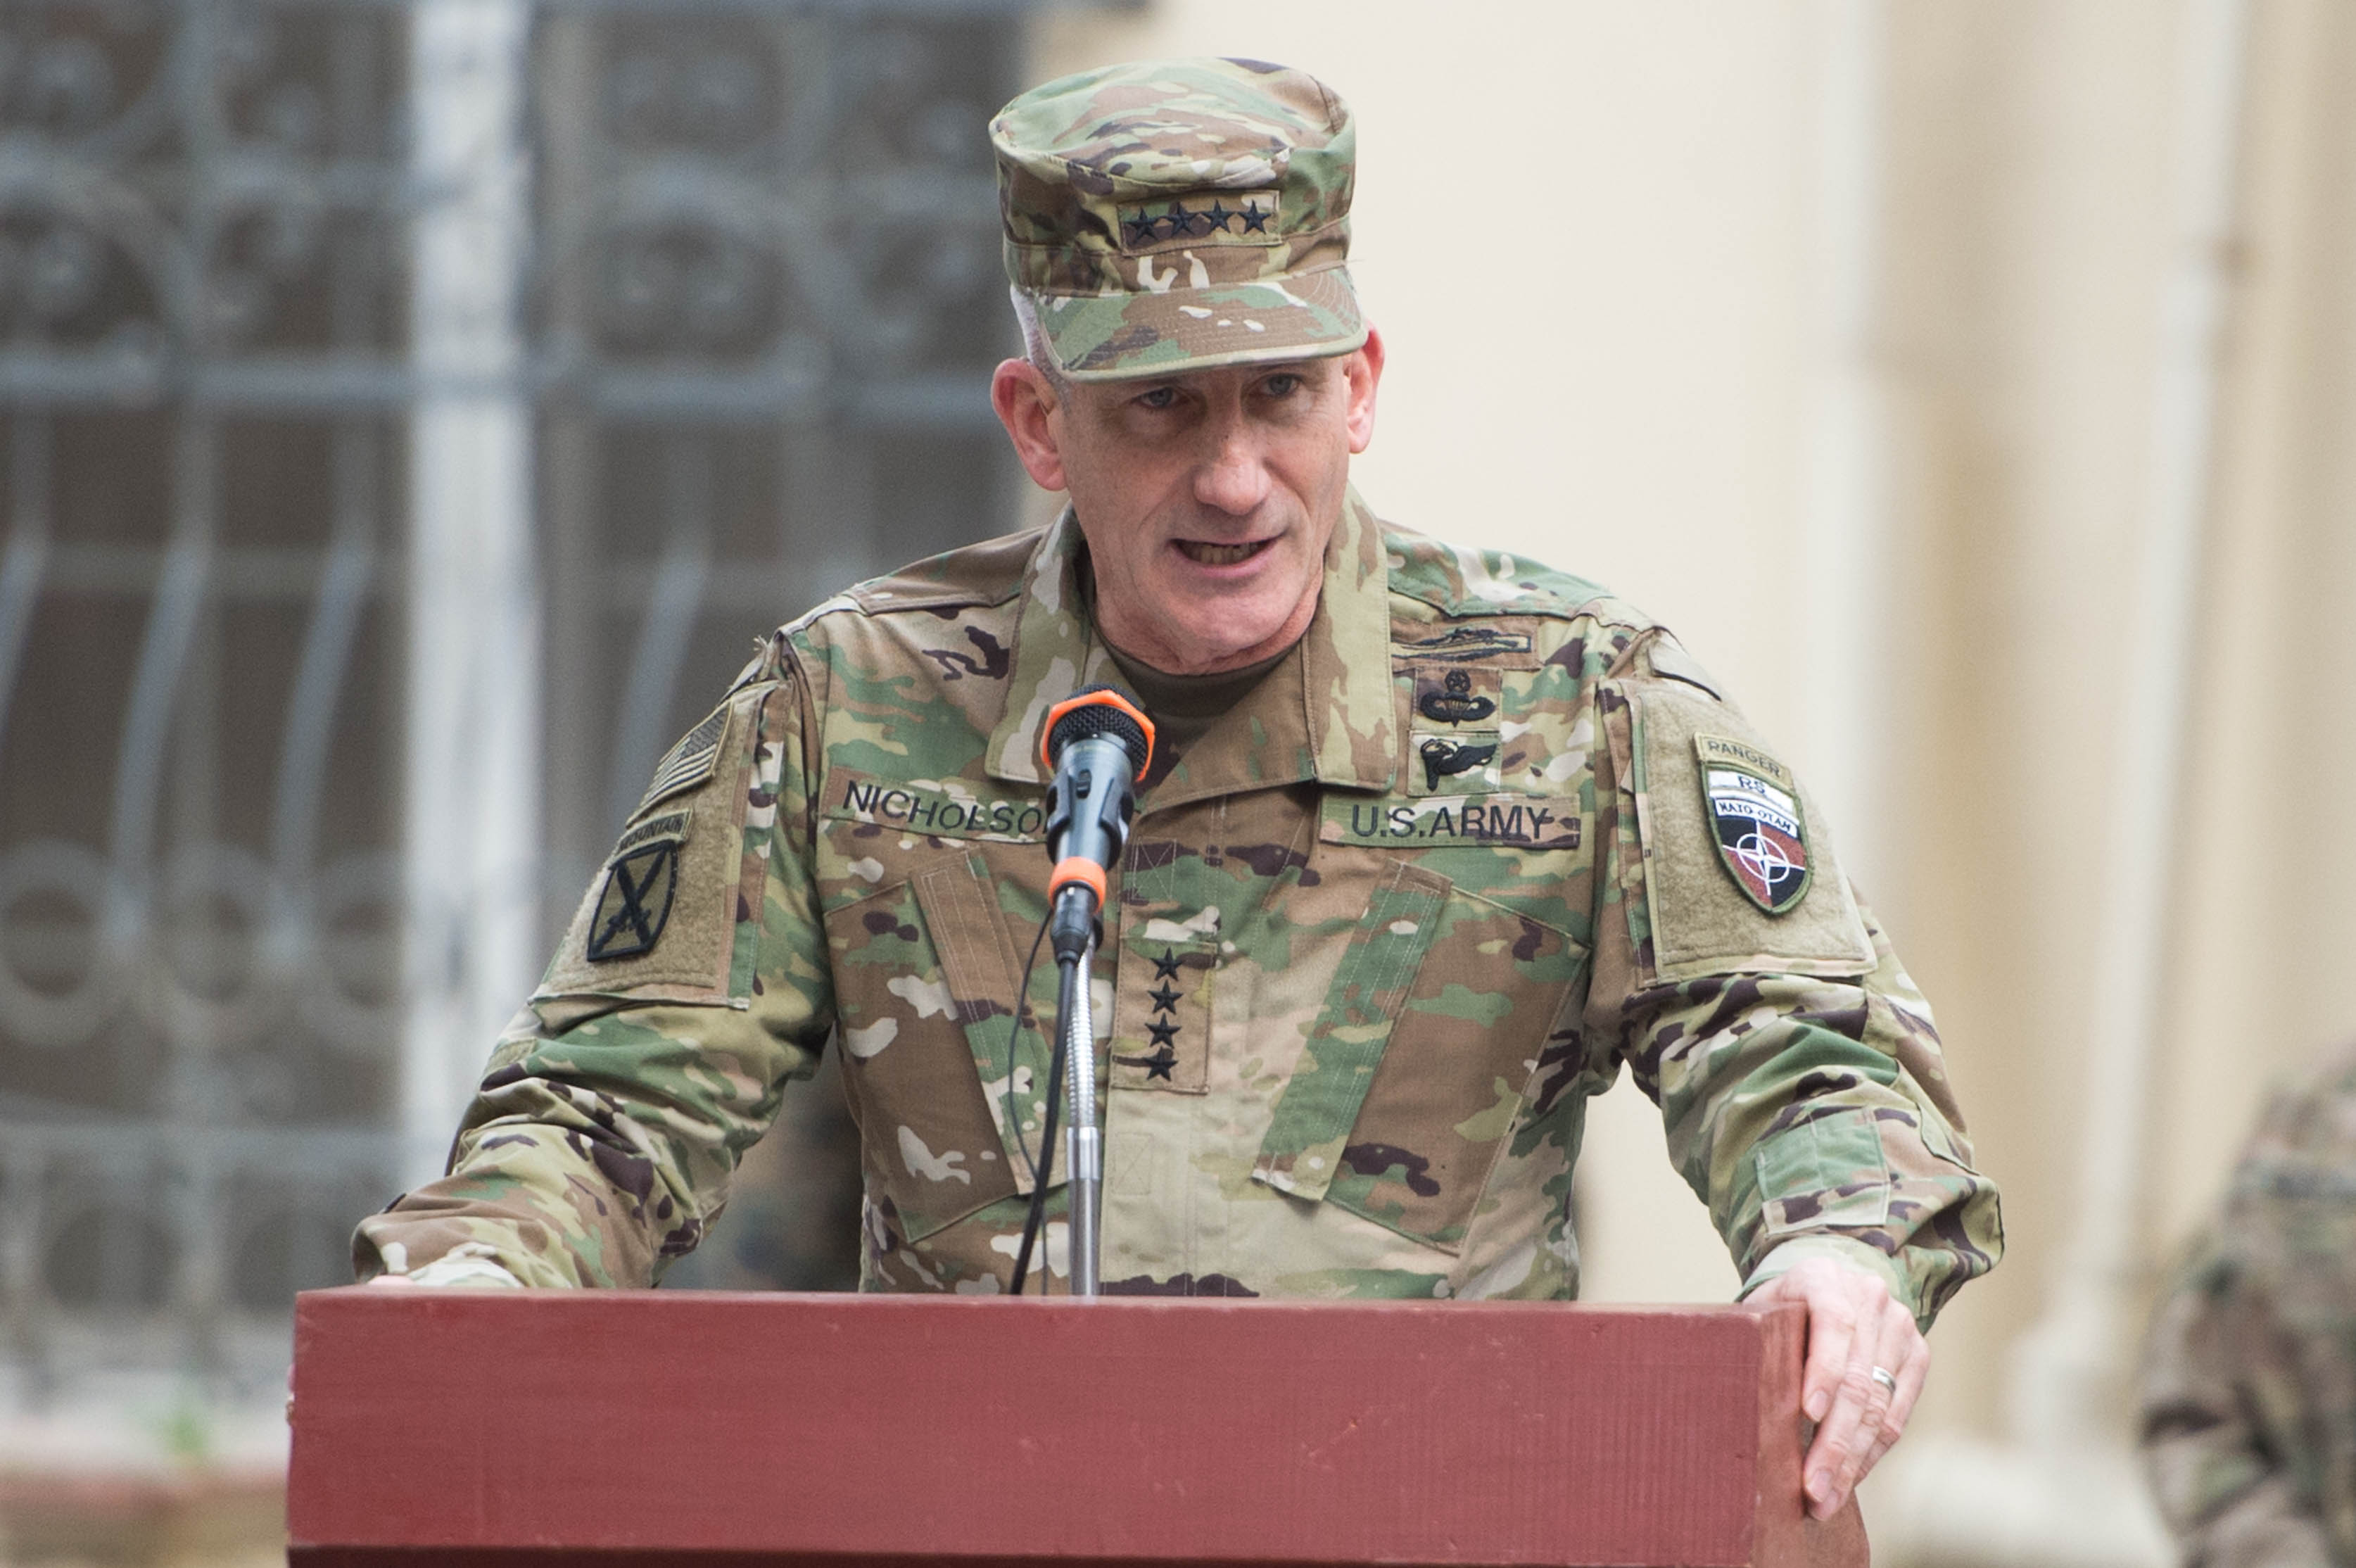 Gen. John W. Nicholson Jr., addresses the audience during the change-of-command ceremony in Kabul, Afghanistan, March 2, 2016. US Army Photo